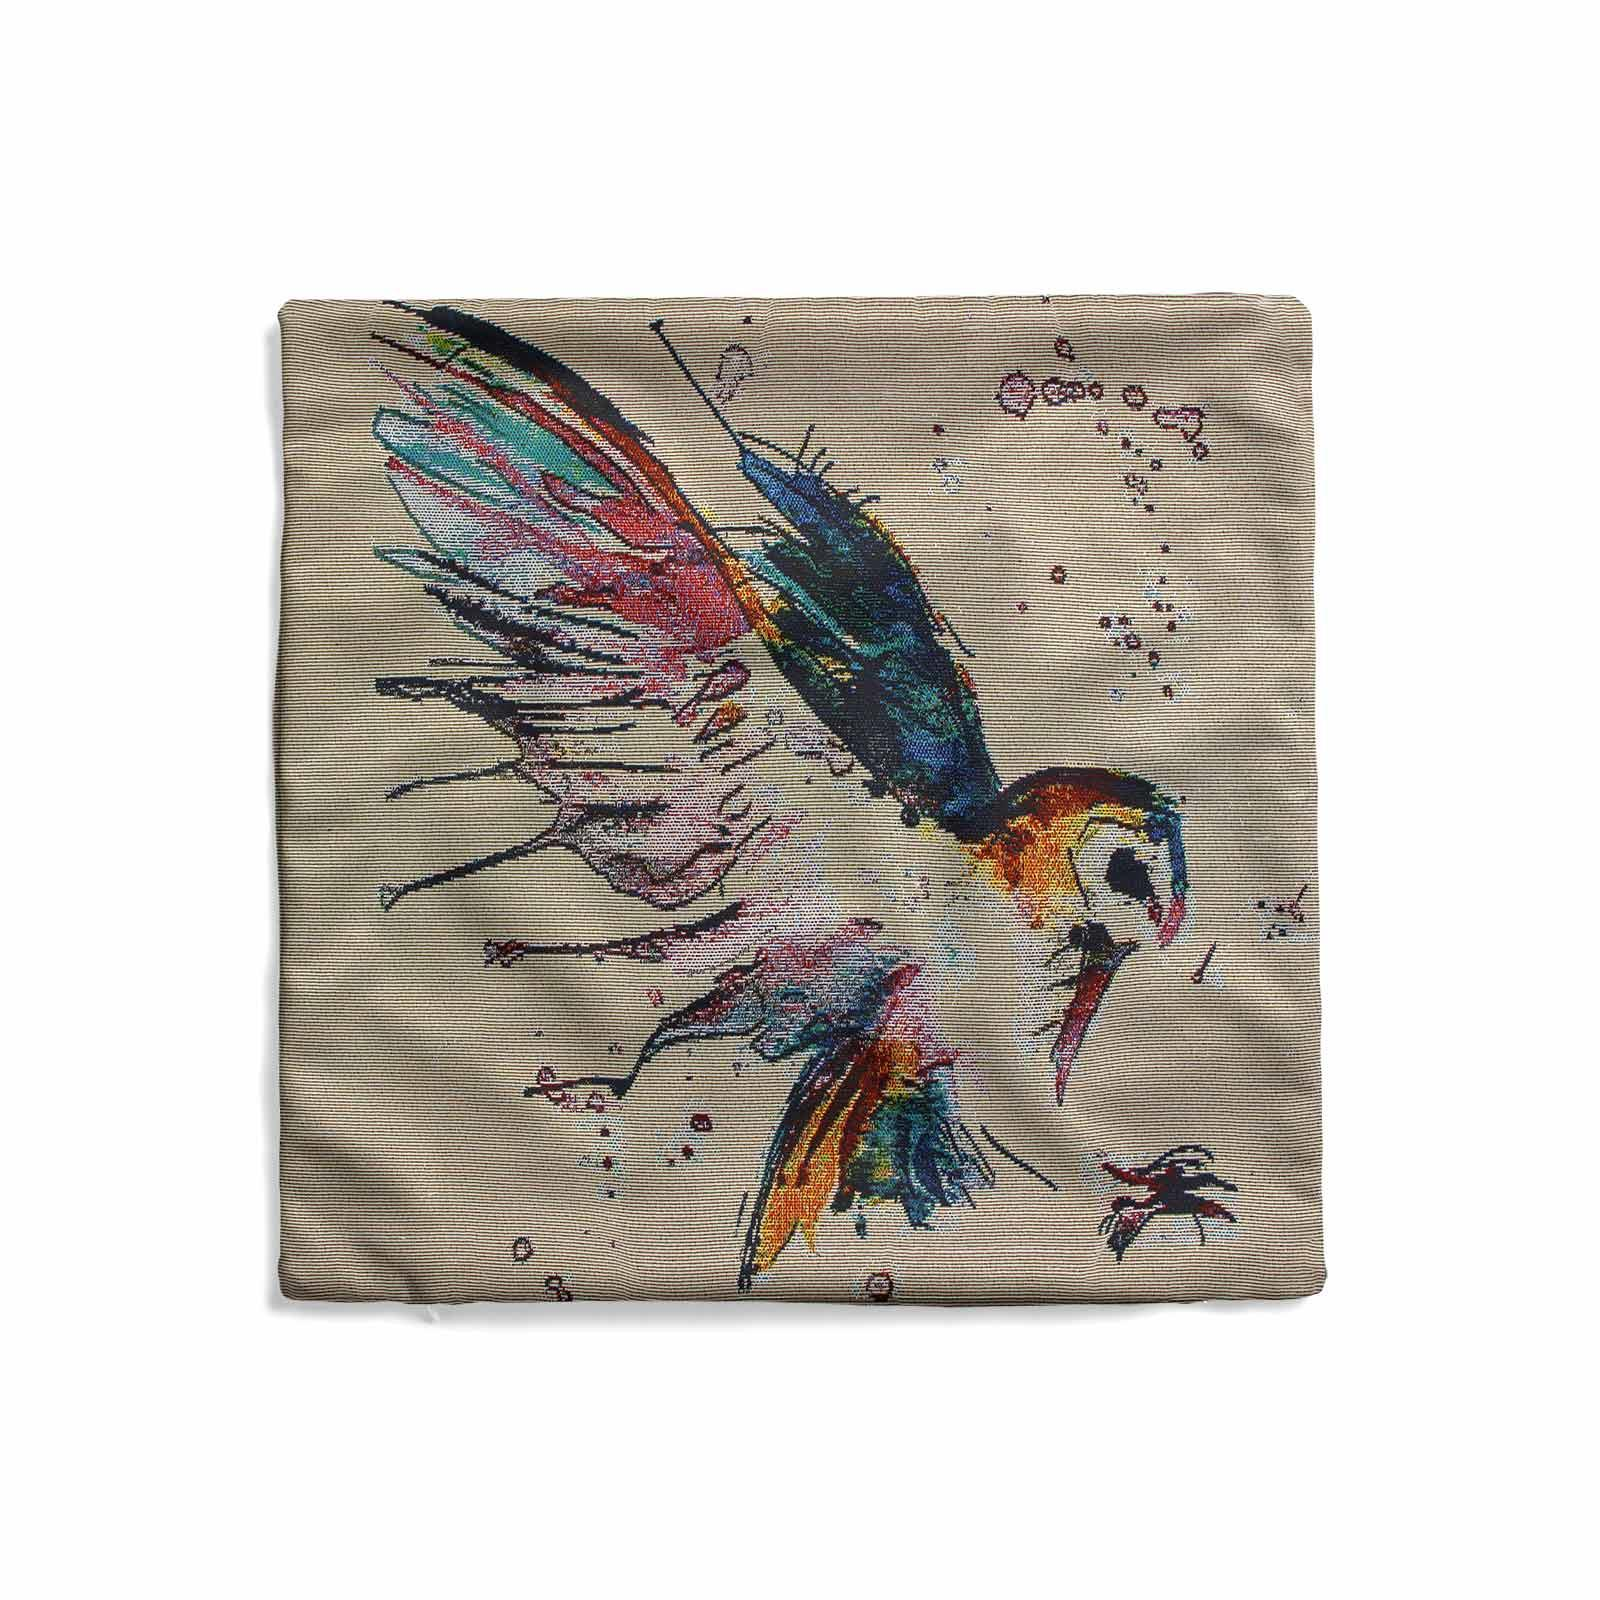 Tapestry-Cushion-Covers-Vintage-Pillow-Cover-Collection-18-034-45cm-Filled-Cushions thumbnail 3